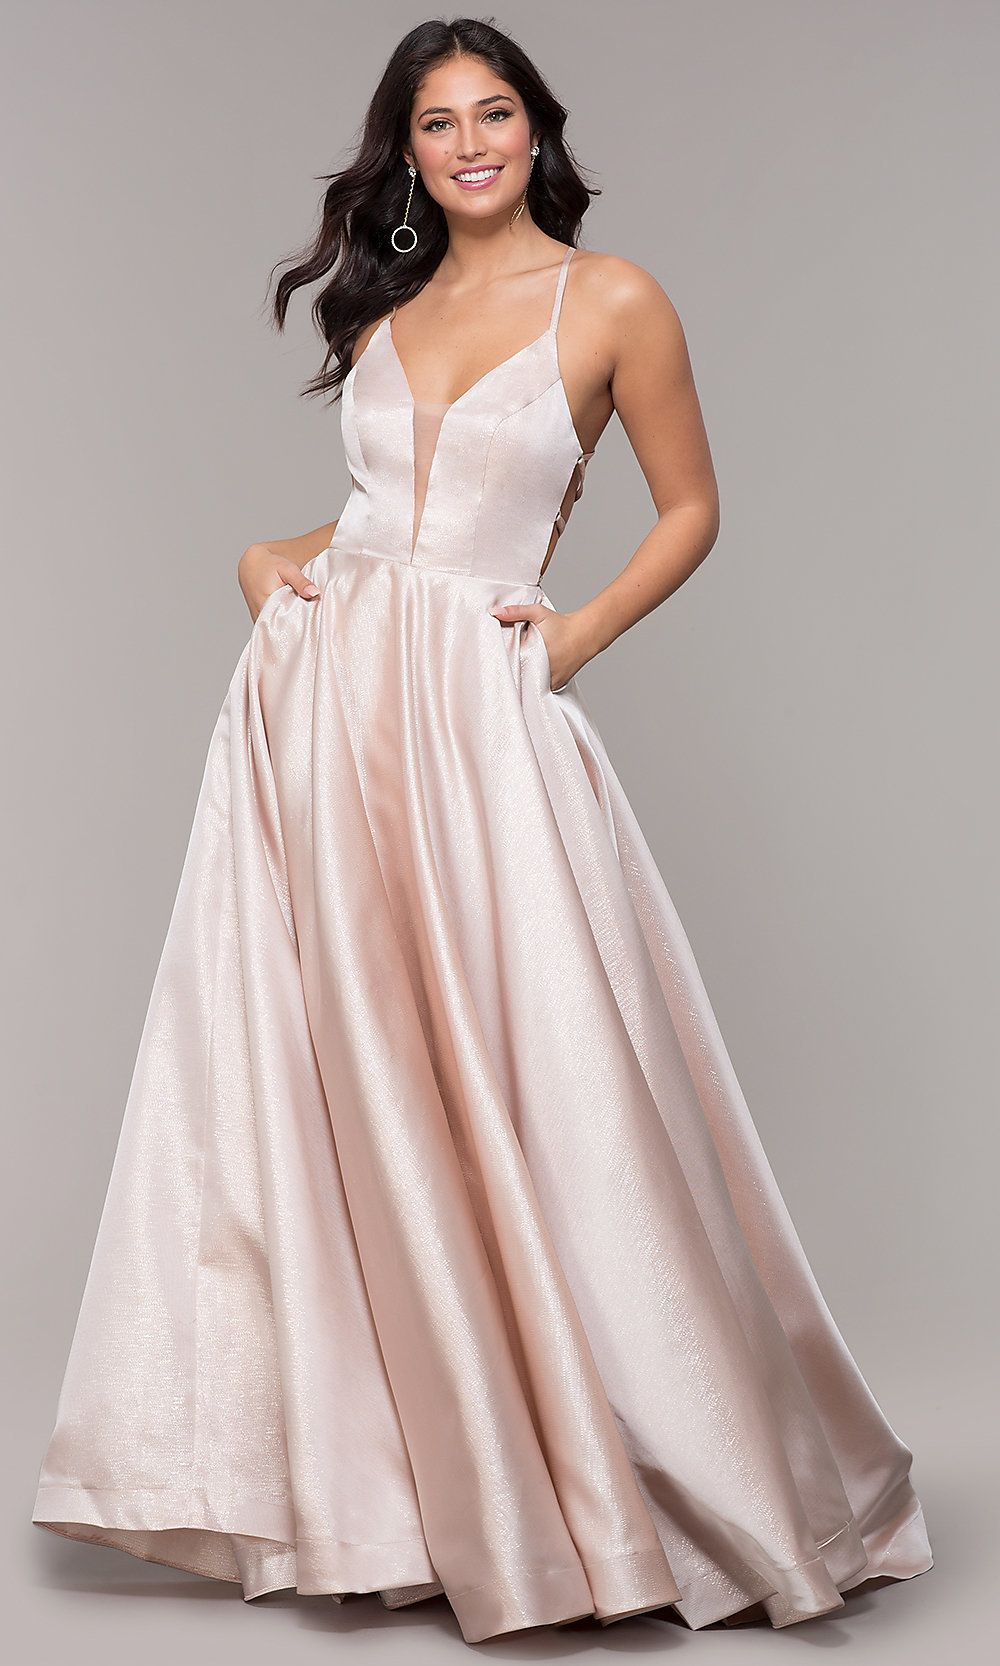 Open Back Long A Line Prom Dress With Pockets A Line Prom Dresses Prom Dresses With Pockets Backless Prom Dresses